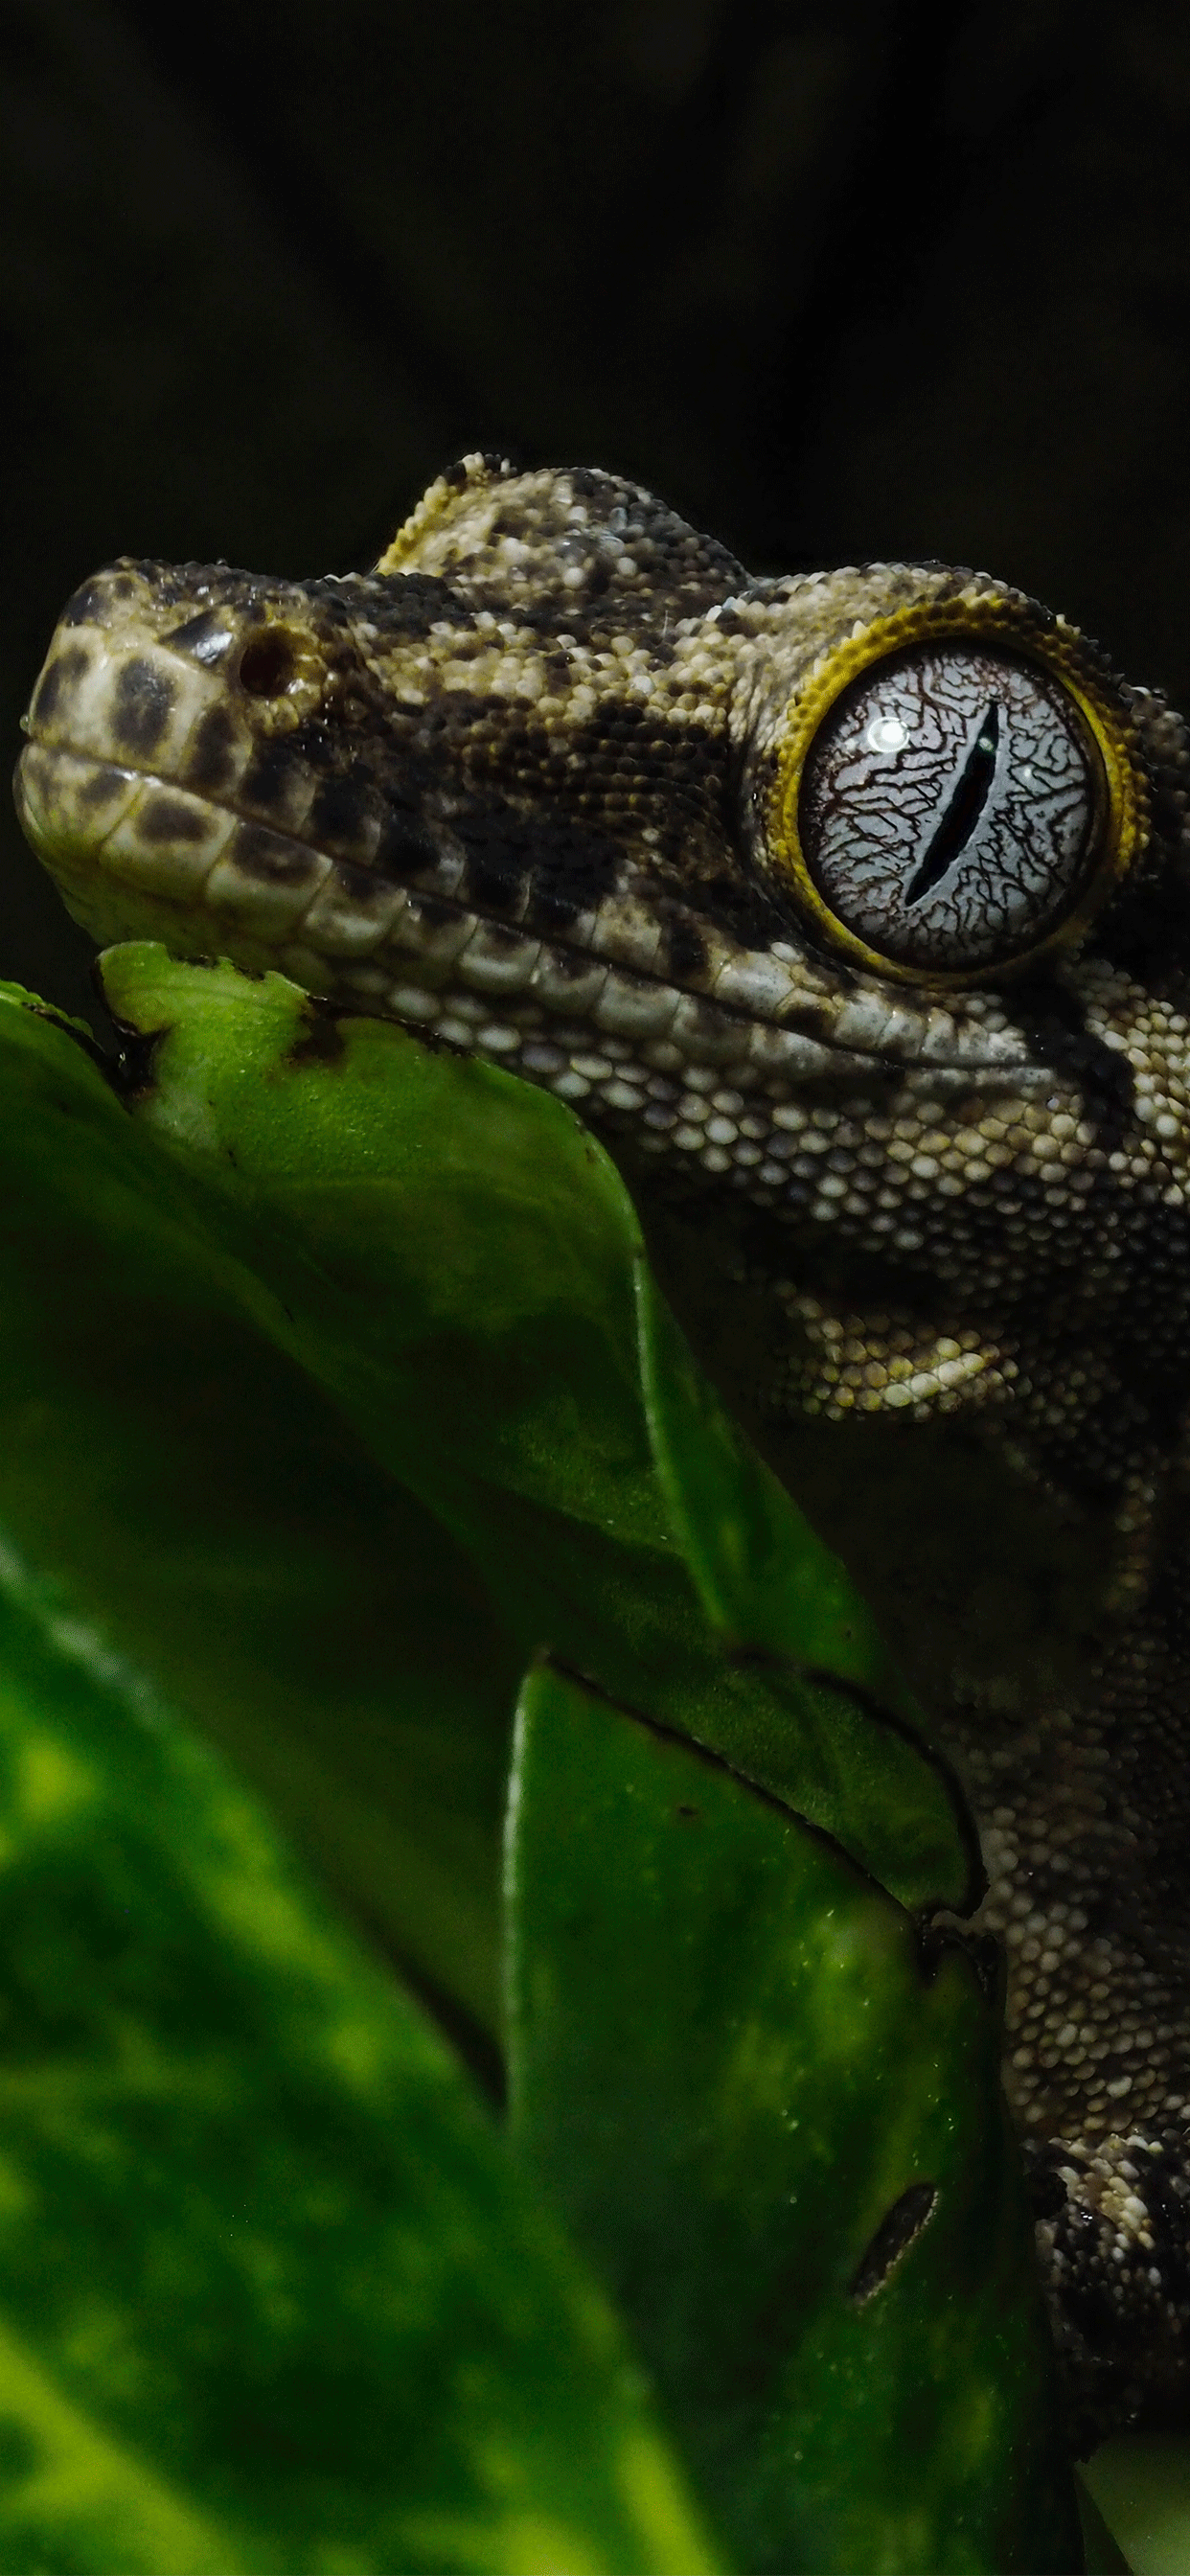 iPhone wallpapers reptiles gecko Fonds d'écran iPhone du 15/04/2019